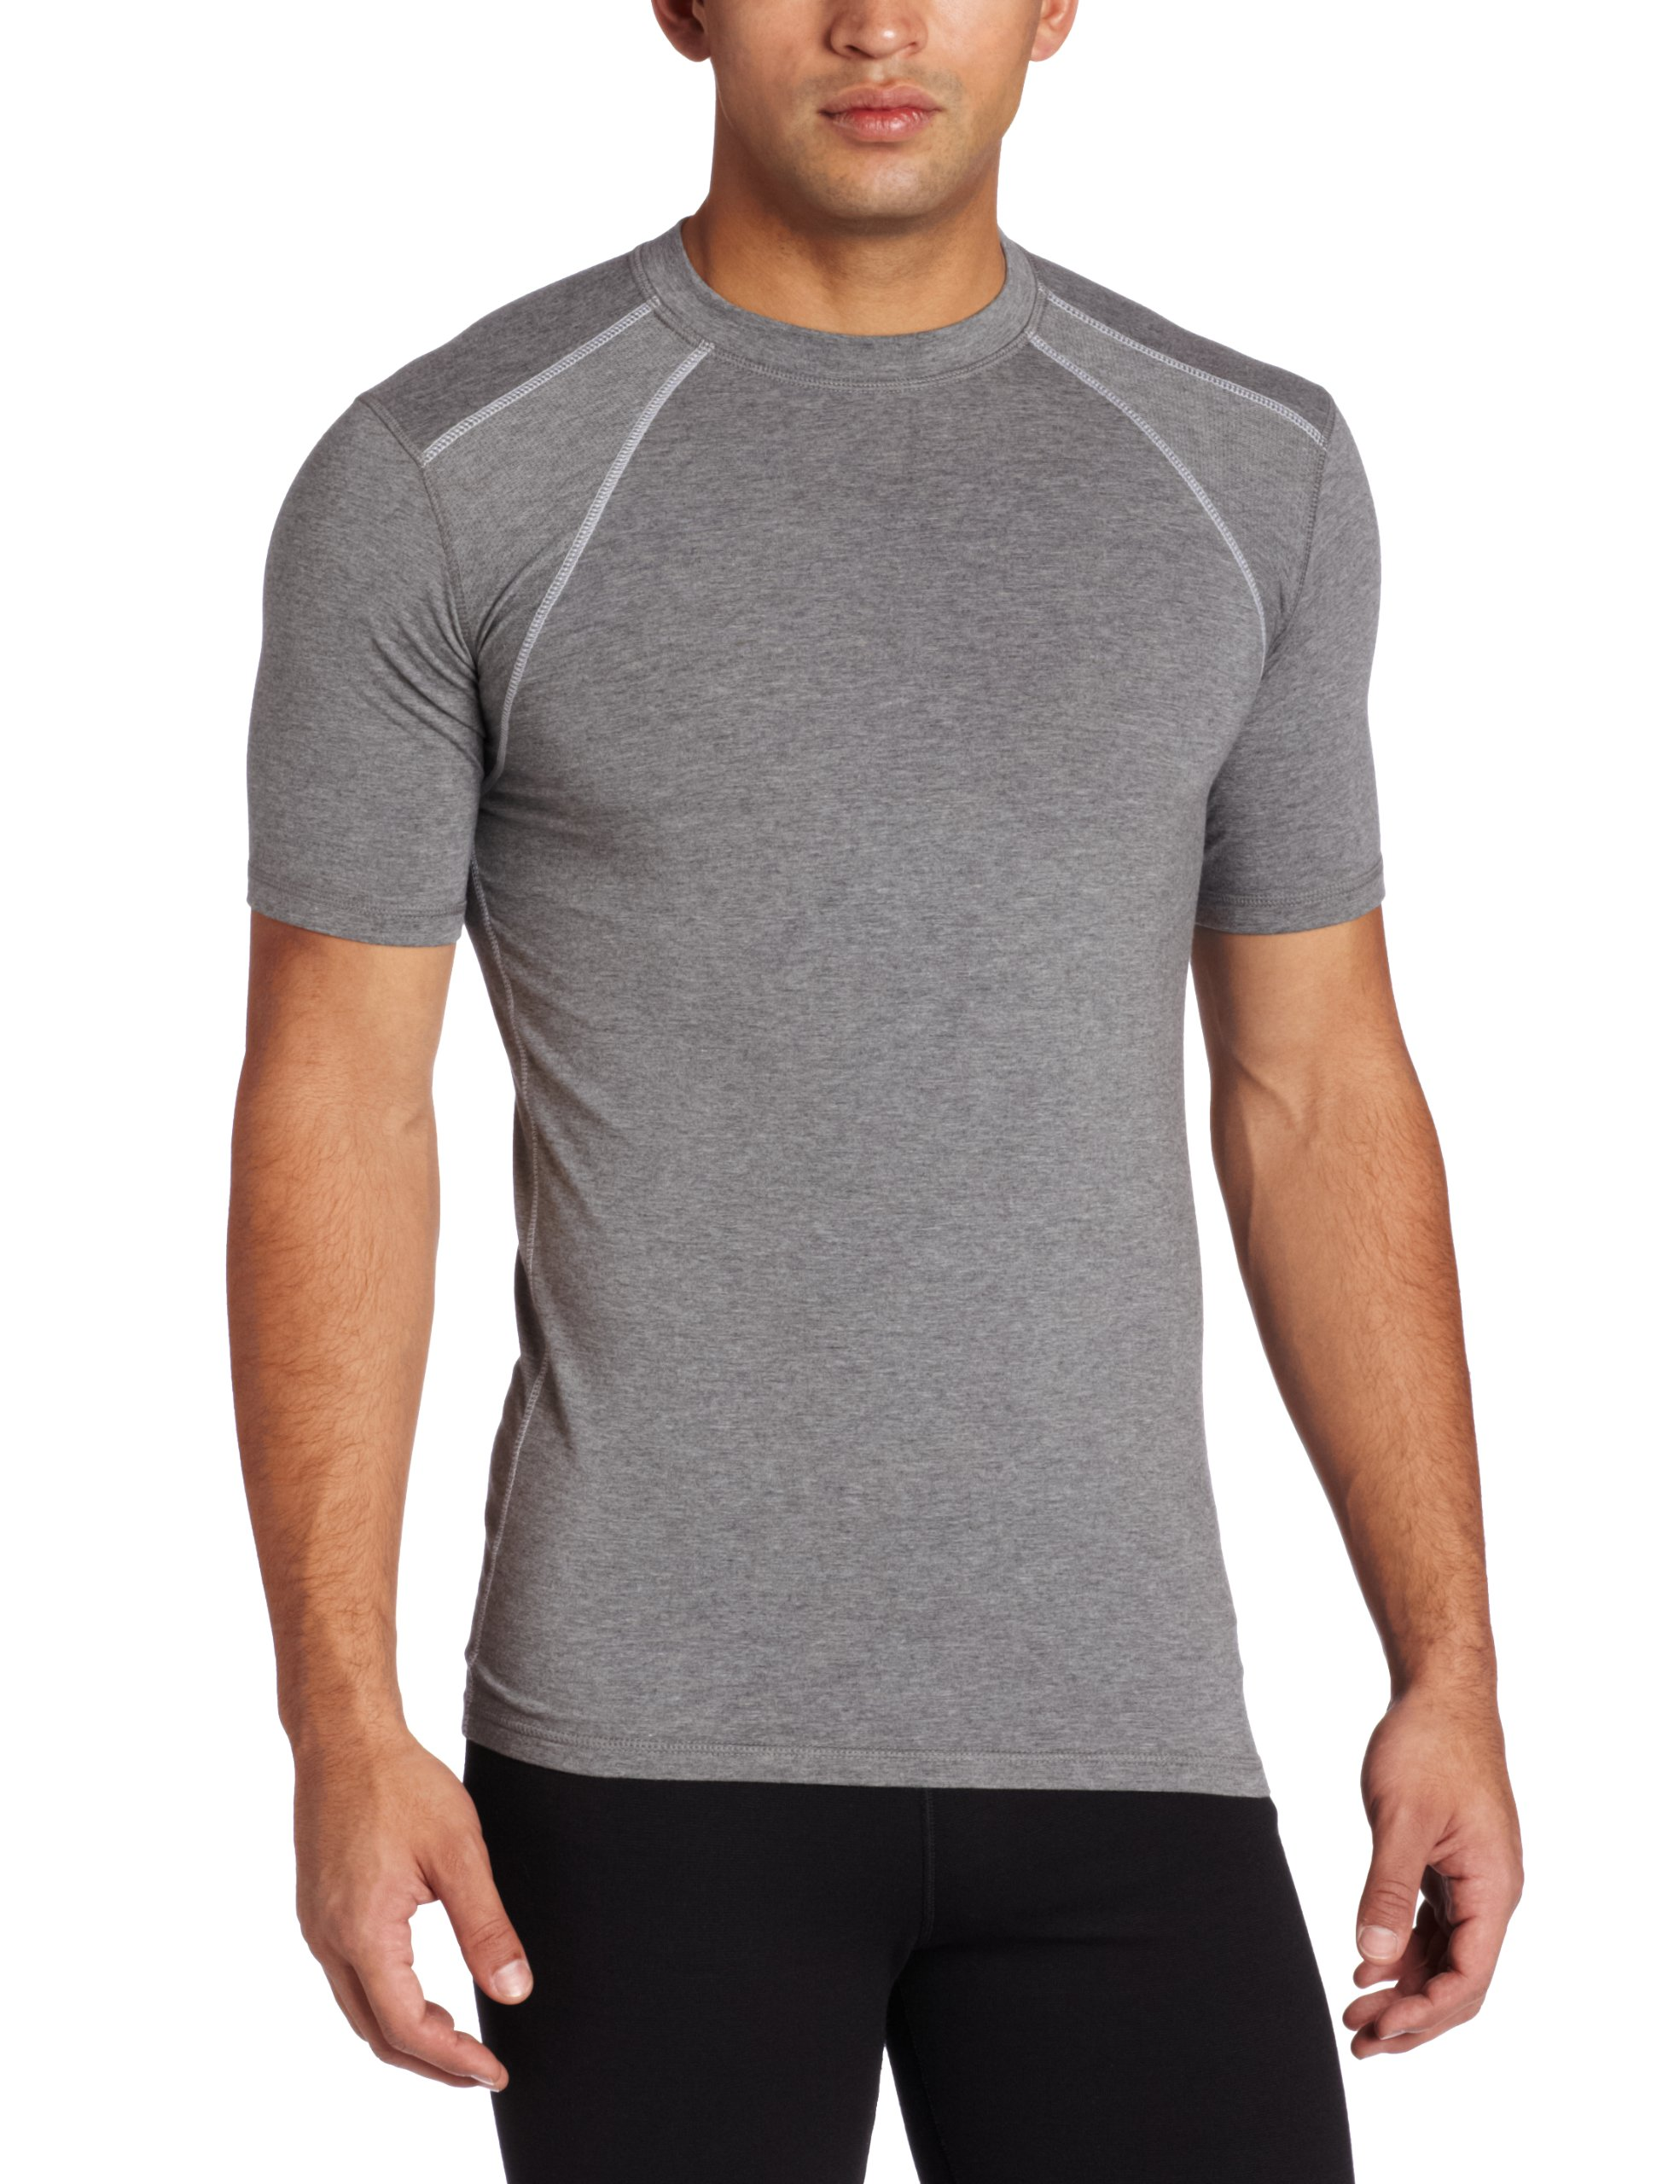 tasc performance men's hybrid fitted short sleeve t-shirt, heather gray, small